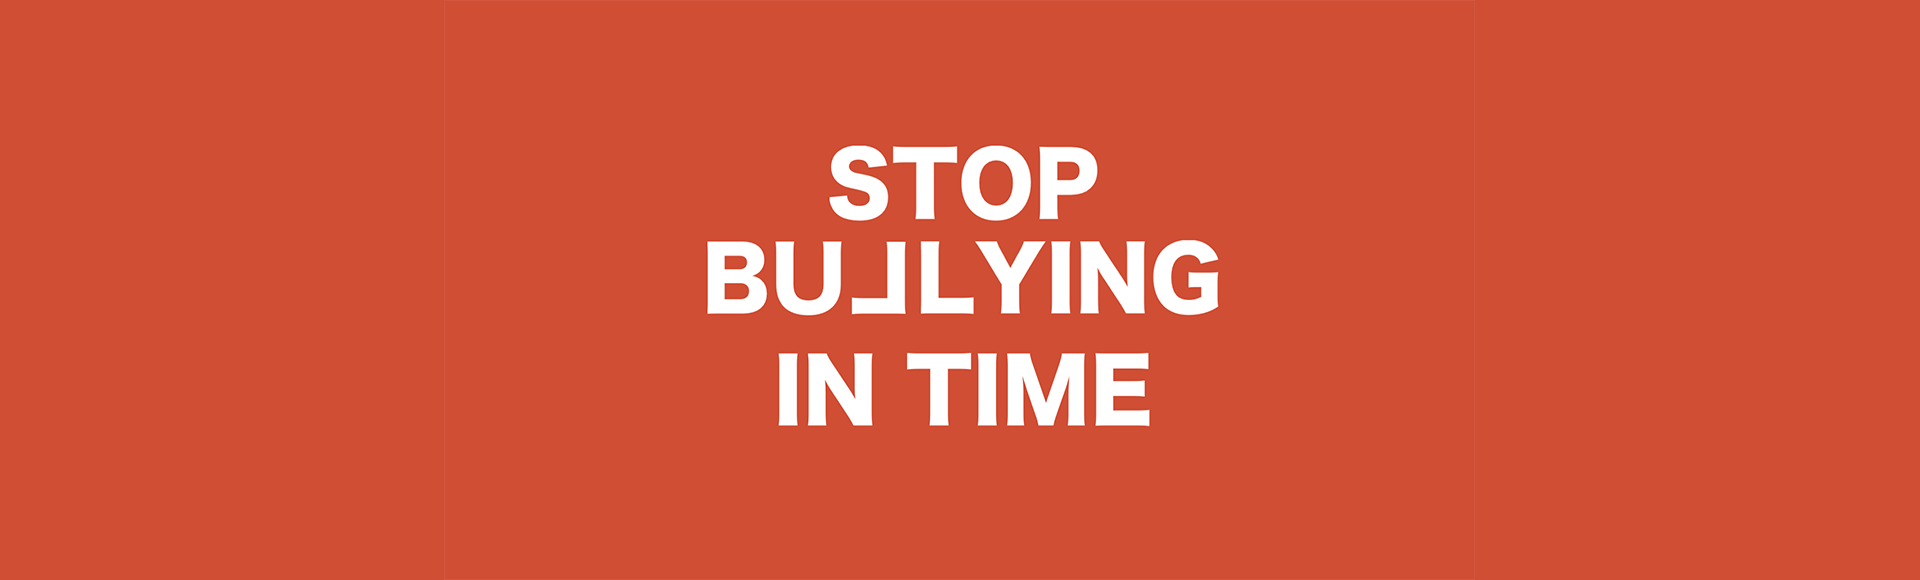 Stop bullying in time